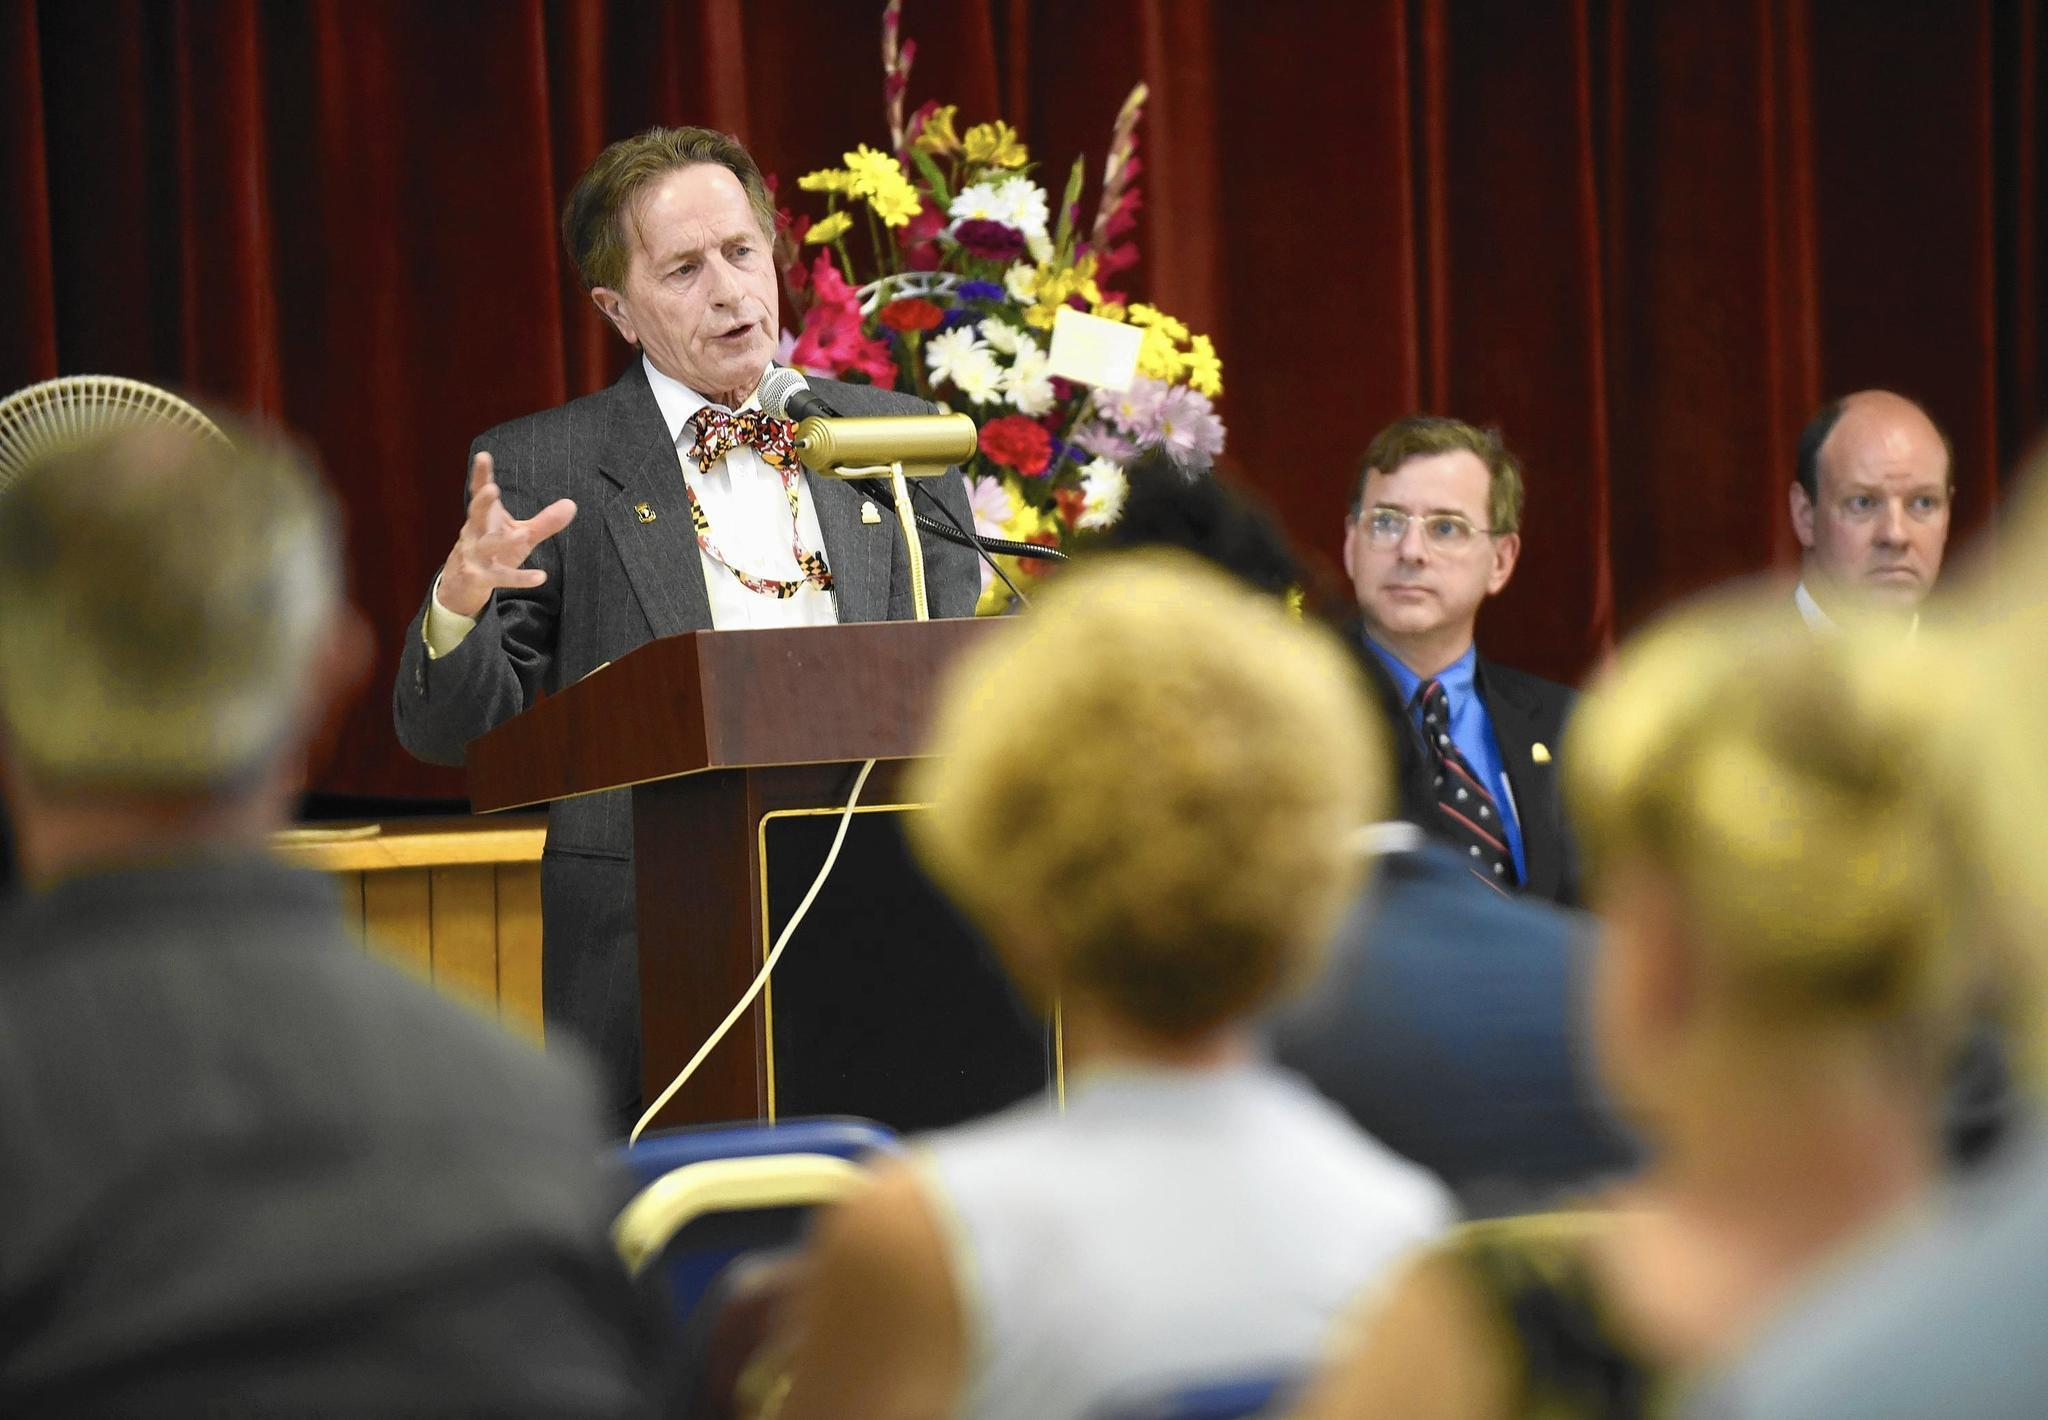 Anatomy Board Of Maryland Donor Ceremony Carroll County Times